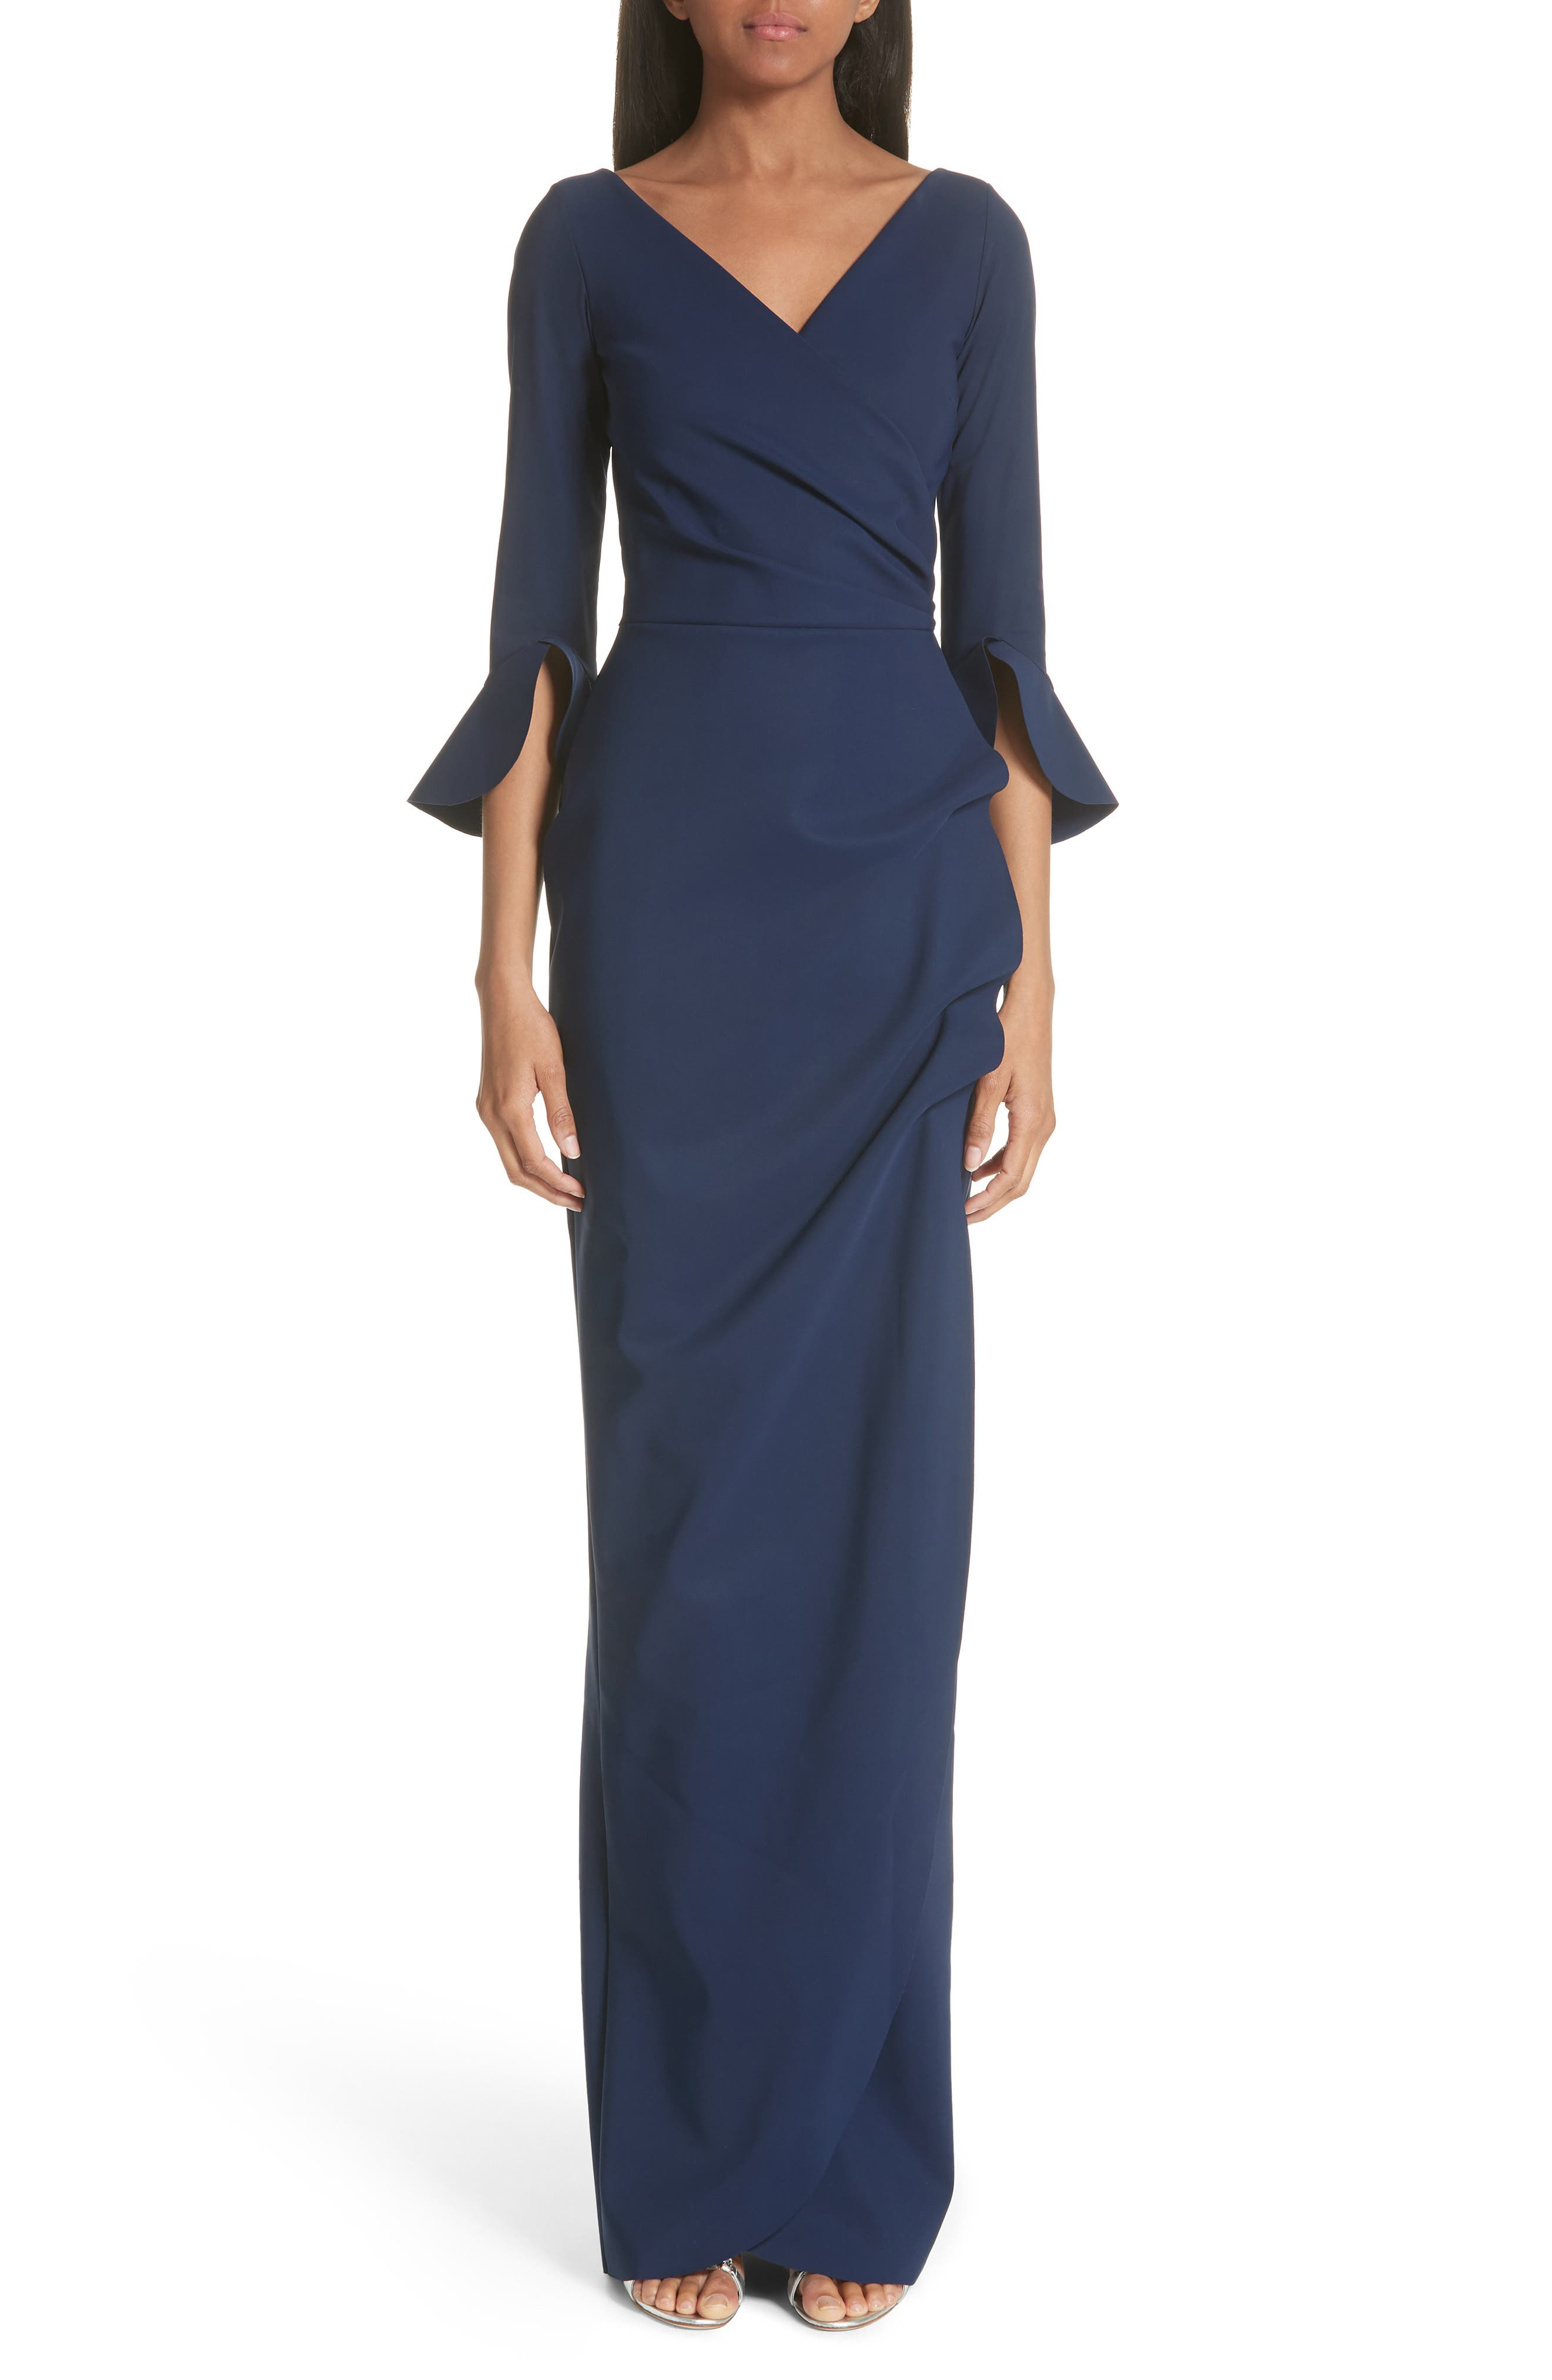 Ruched Bell Sleeve Evening Dress,                             Main thumbnail 1, color,                             BLUE NOTTE